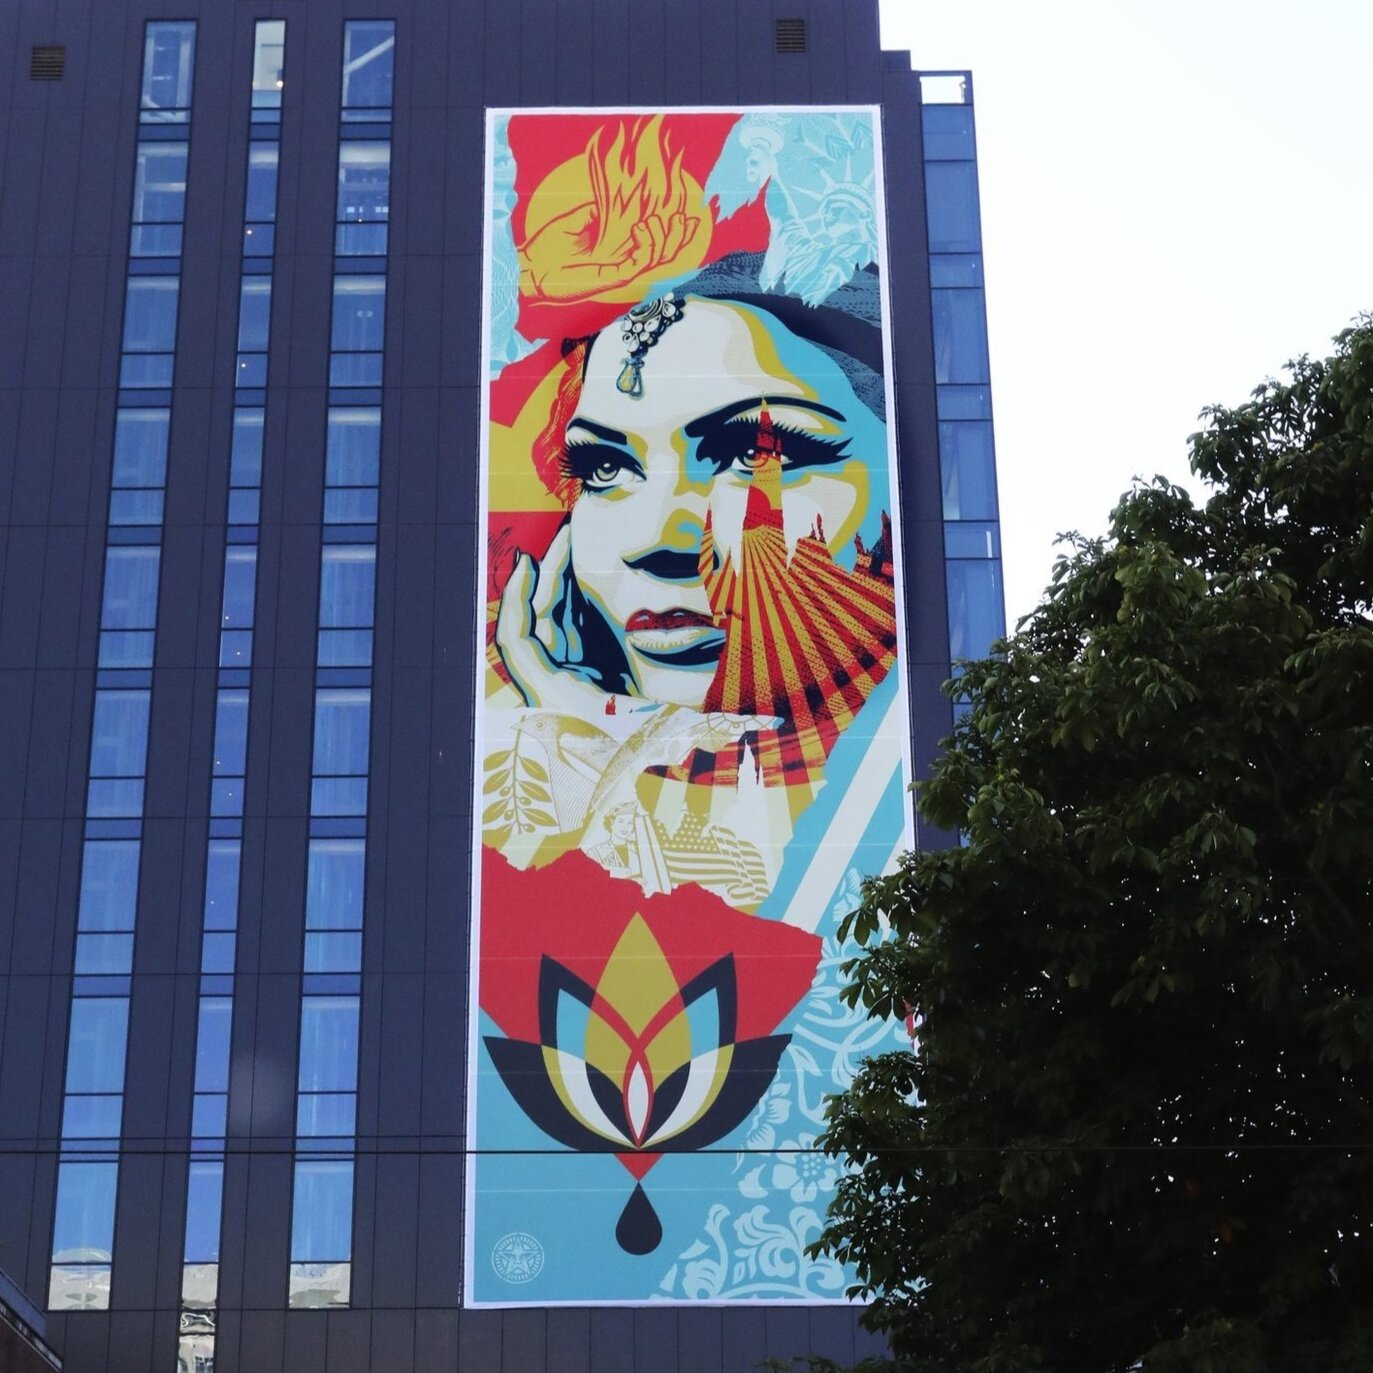 A giant Shepard Fairey print? - featured on seattletimes.com